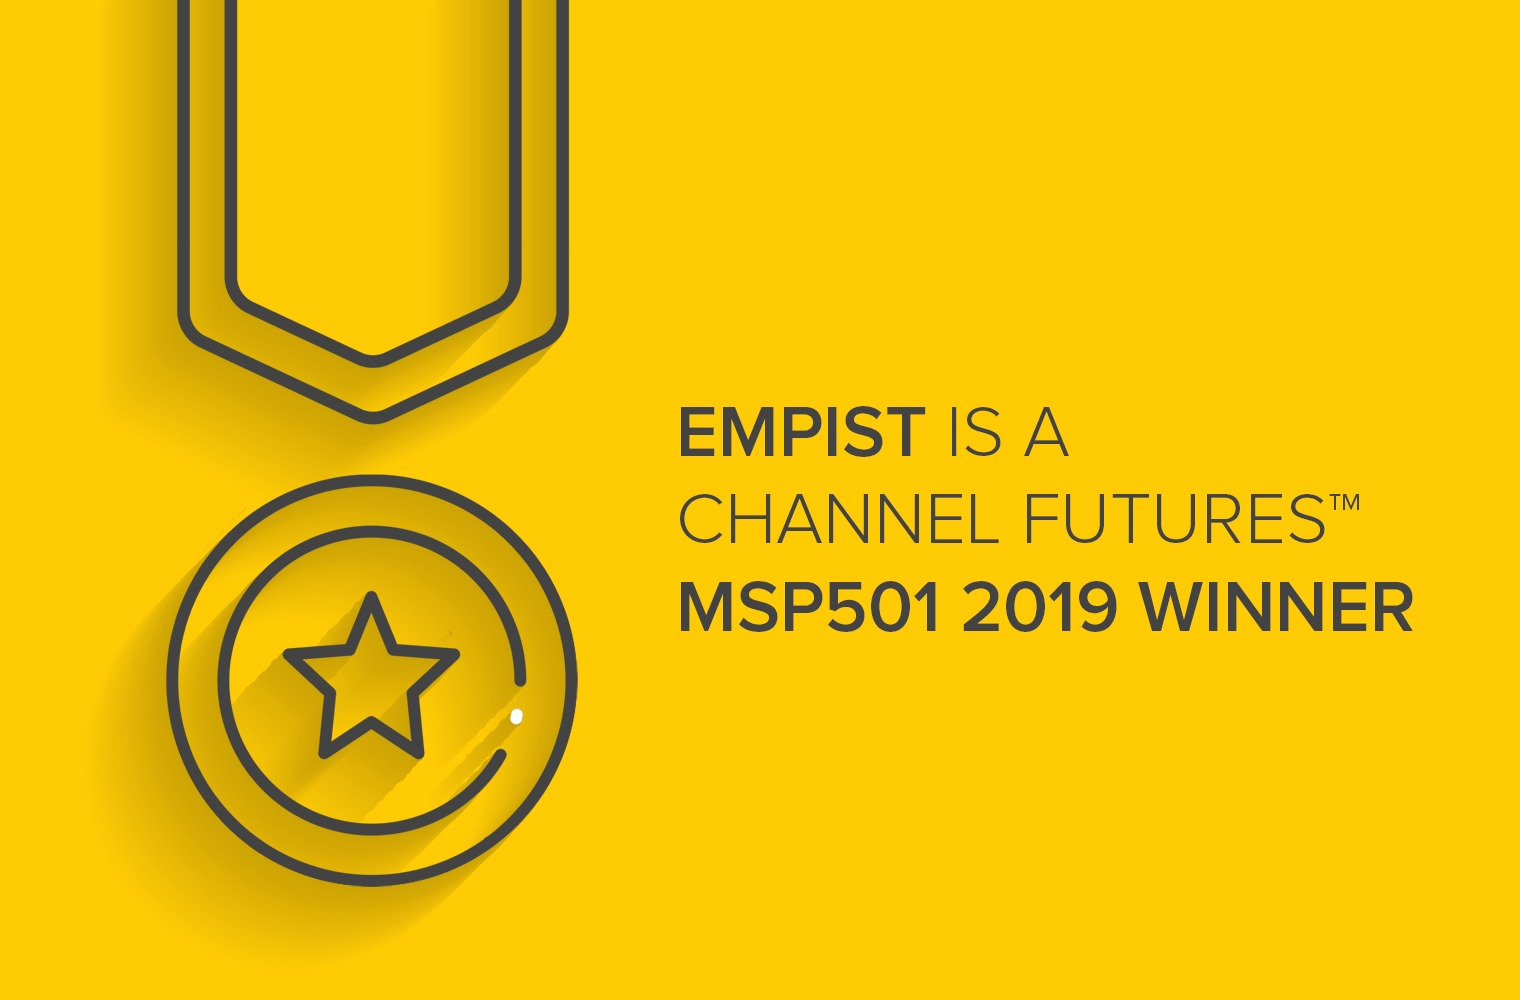 EMPIST LLC Ranks at #188 on the MSP 501 List